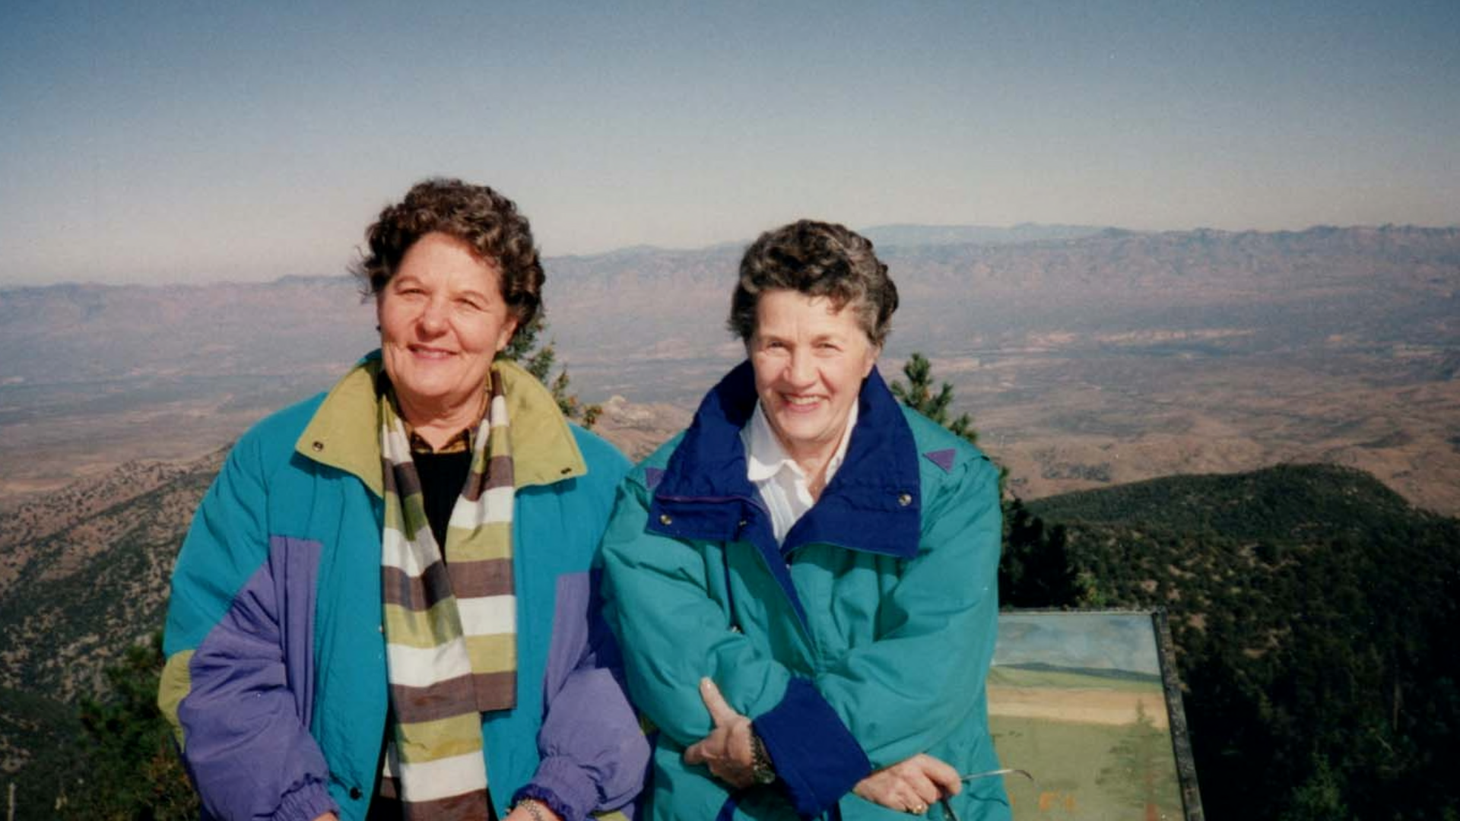 """Terry Donahue and Pat Henschel hid their romantic relationship from their families for decades. They're the subject of a new documentary called """"A Secret Love."""""""